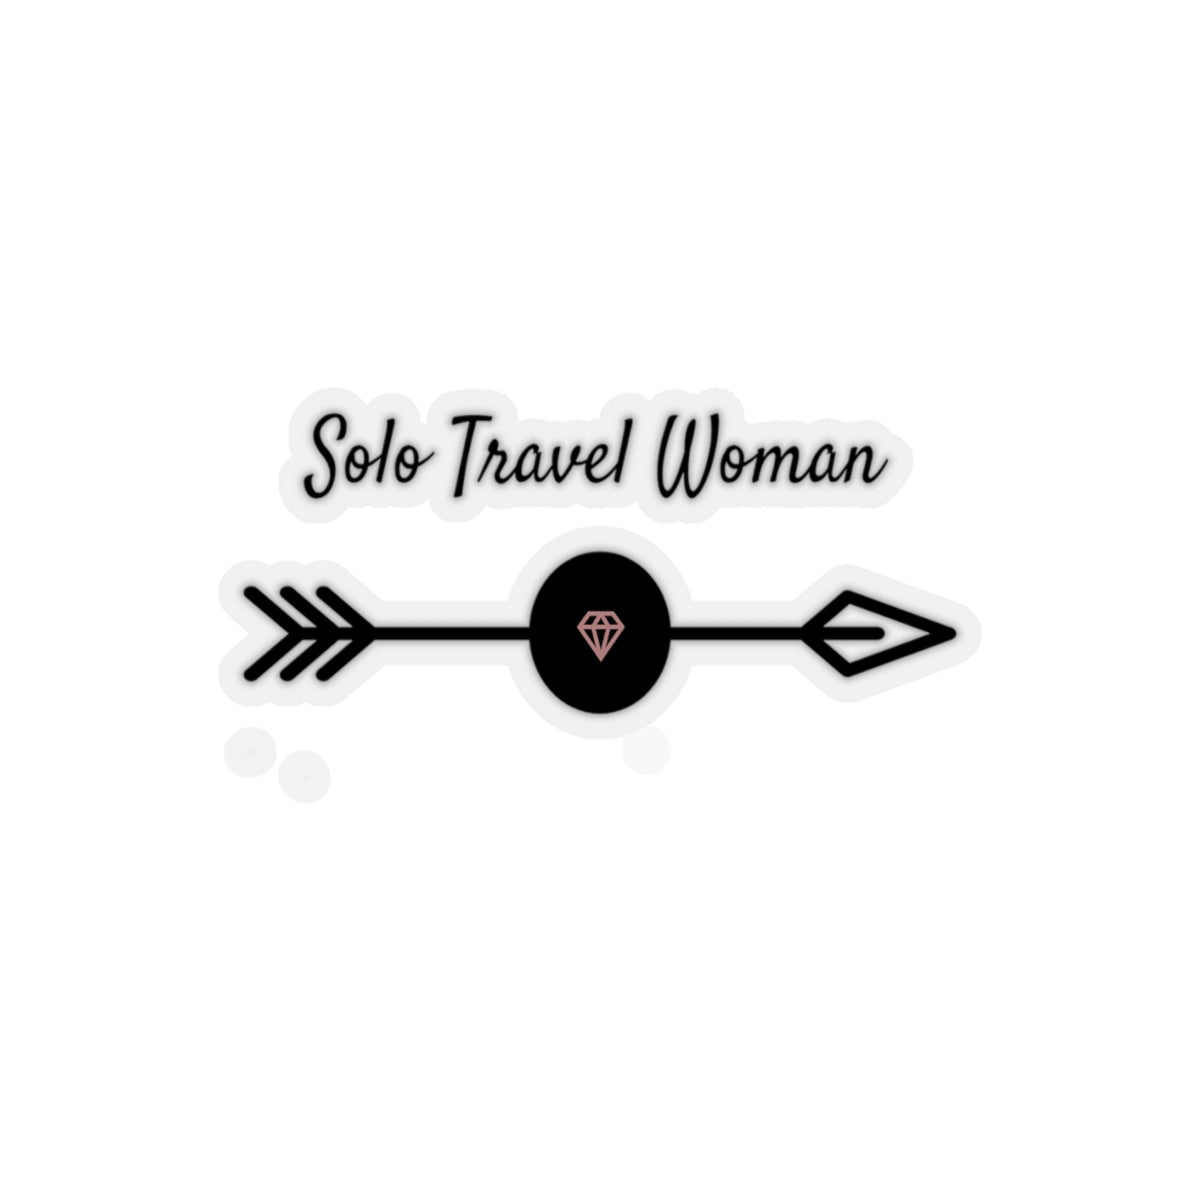 Solo Travel Woman Kiss-Cut Stickers - Solo Travel Woman